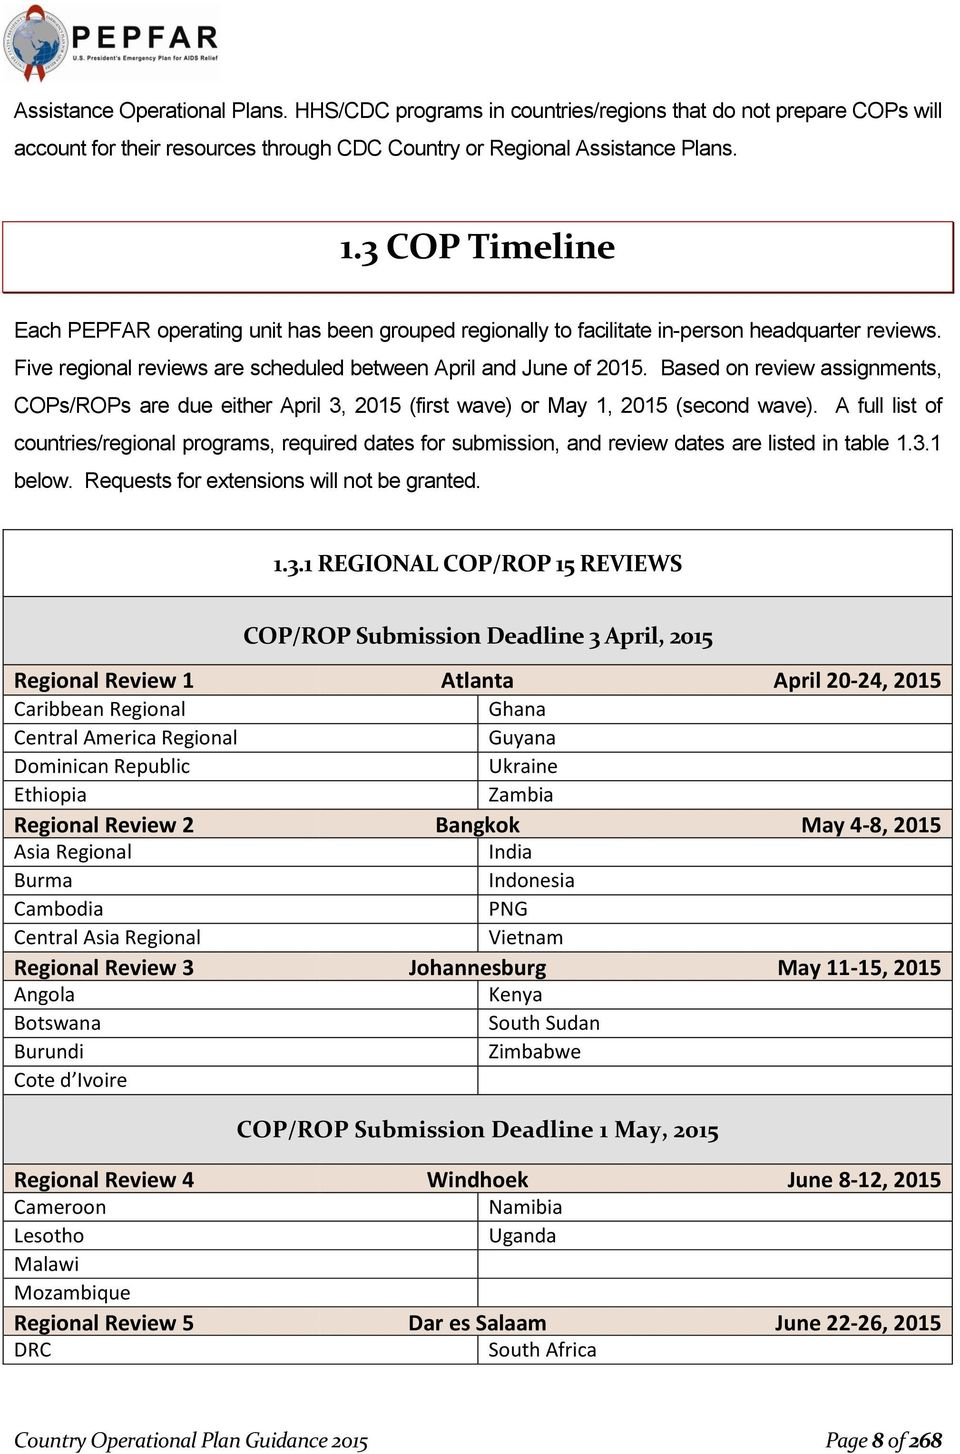 Based on review assignments, COPs/ROPs are due either April 3, 2015 (first wave) or May 1, 2015 (second wave).